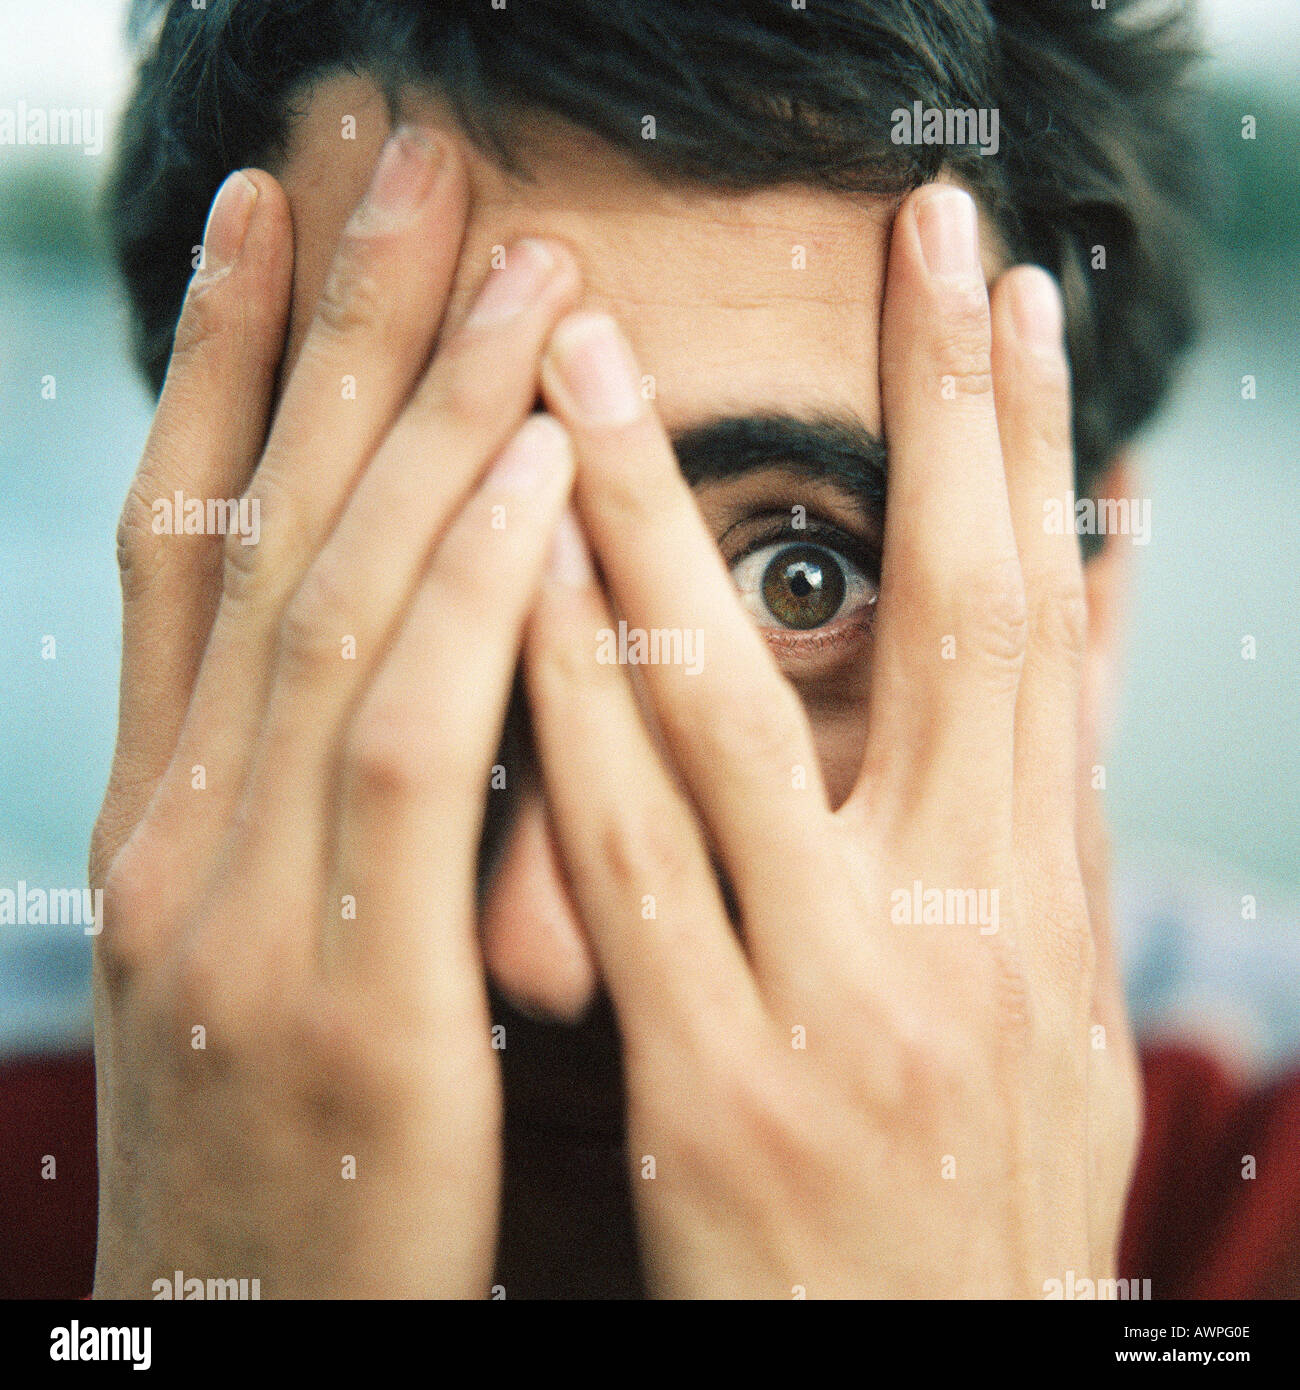 Young man with hands over face, looking through fingers with one eye, close-up - Stock Image